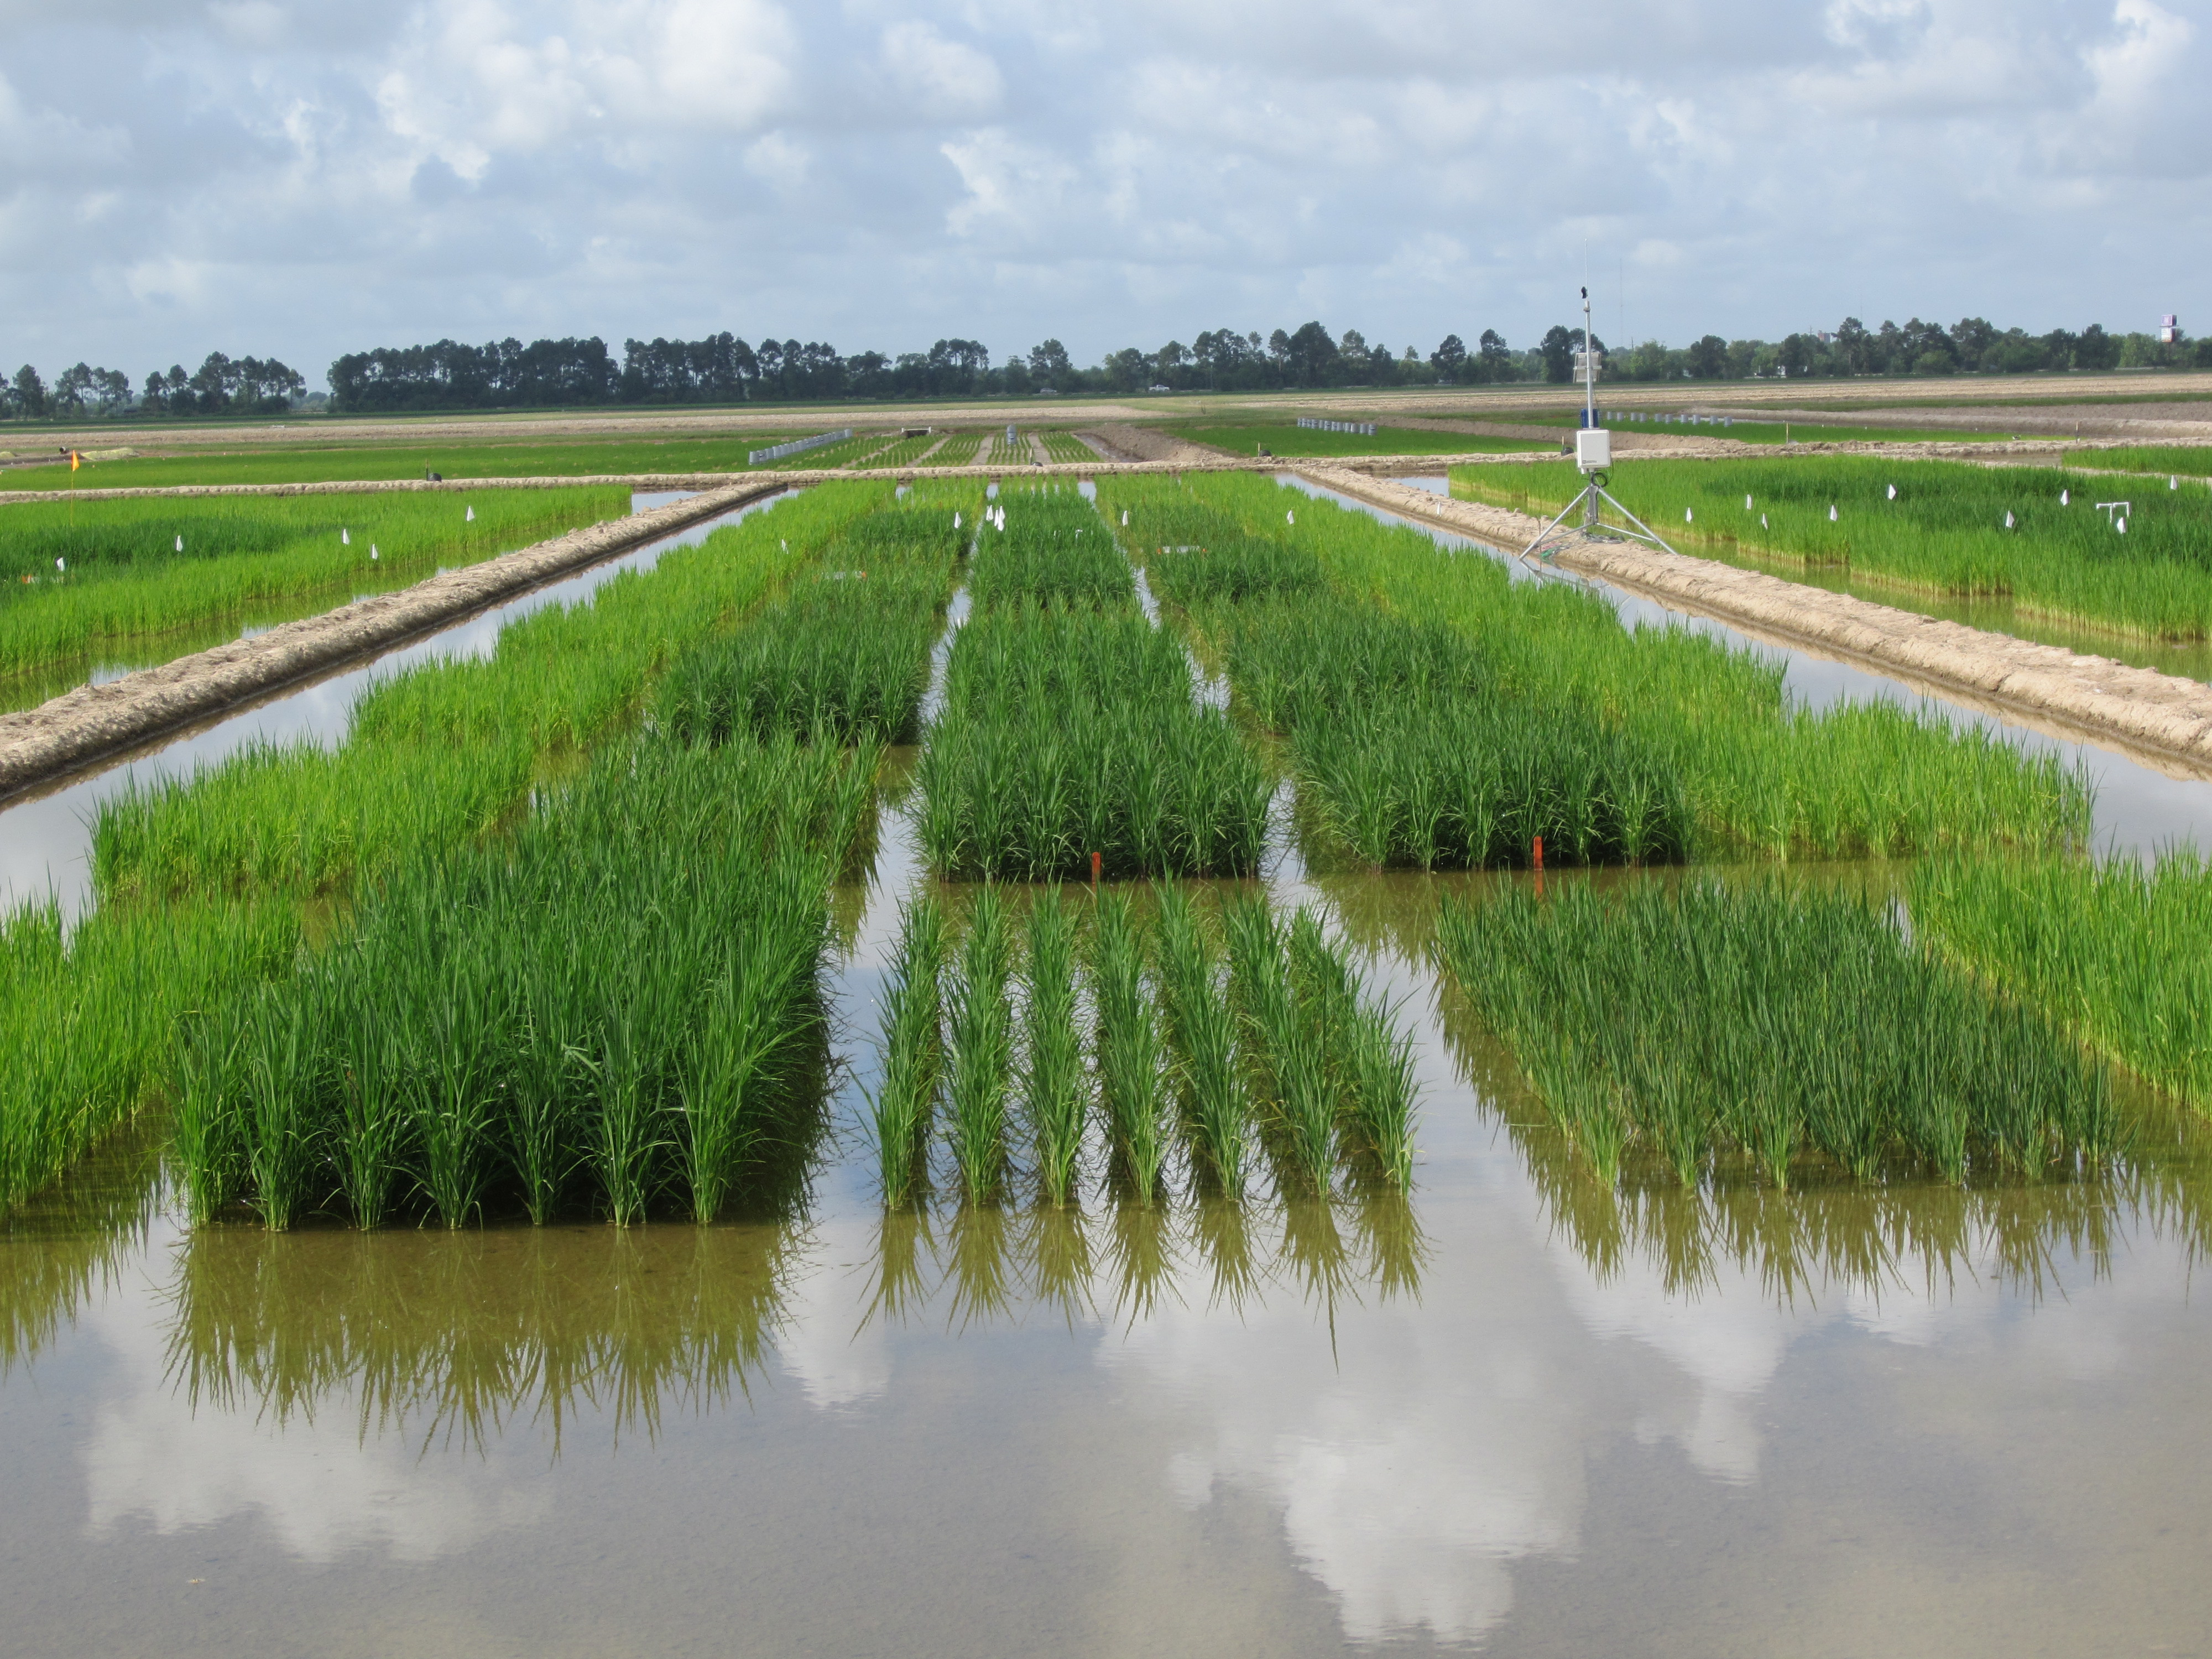 LSU AgCenter rice field day set for June 28 in Crowley